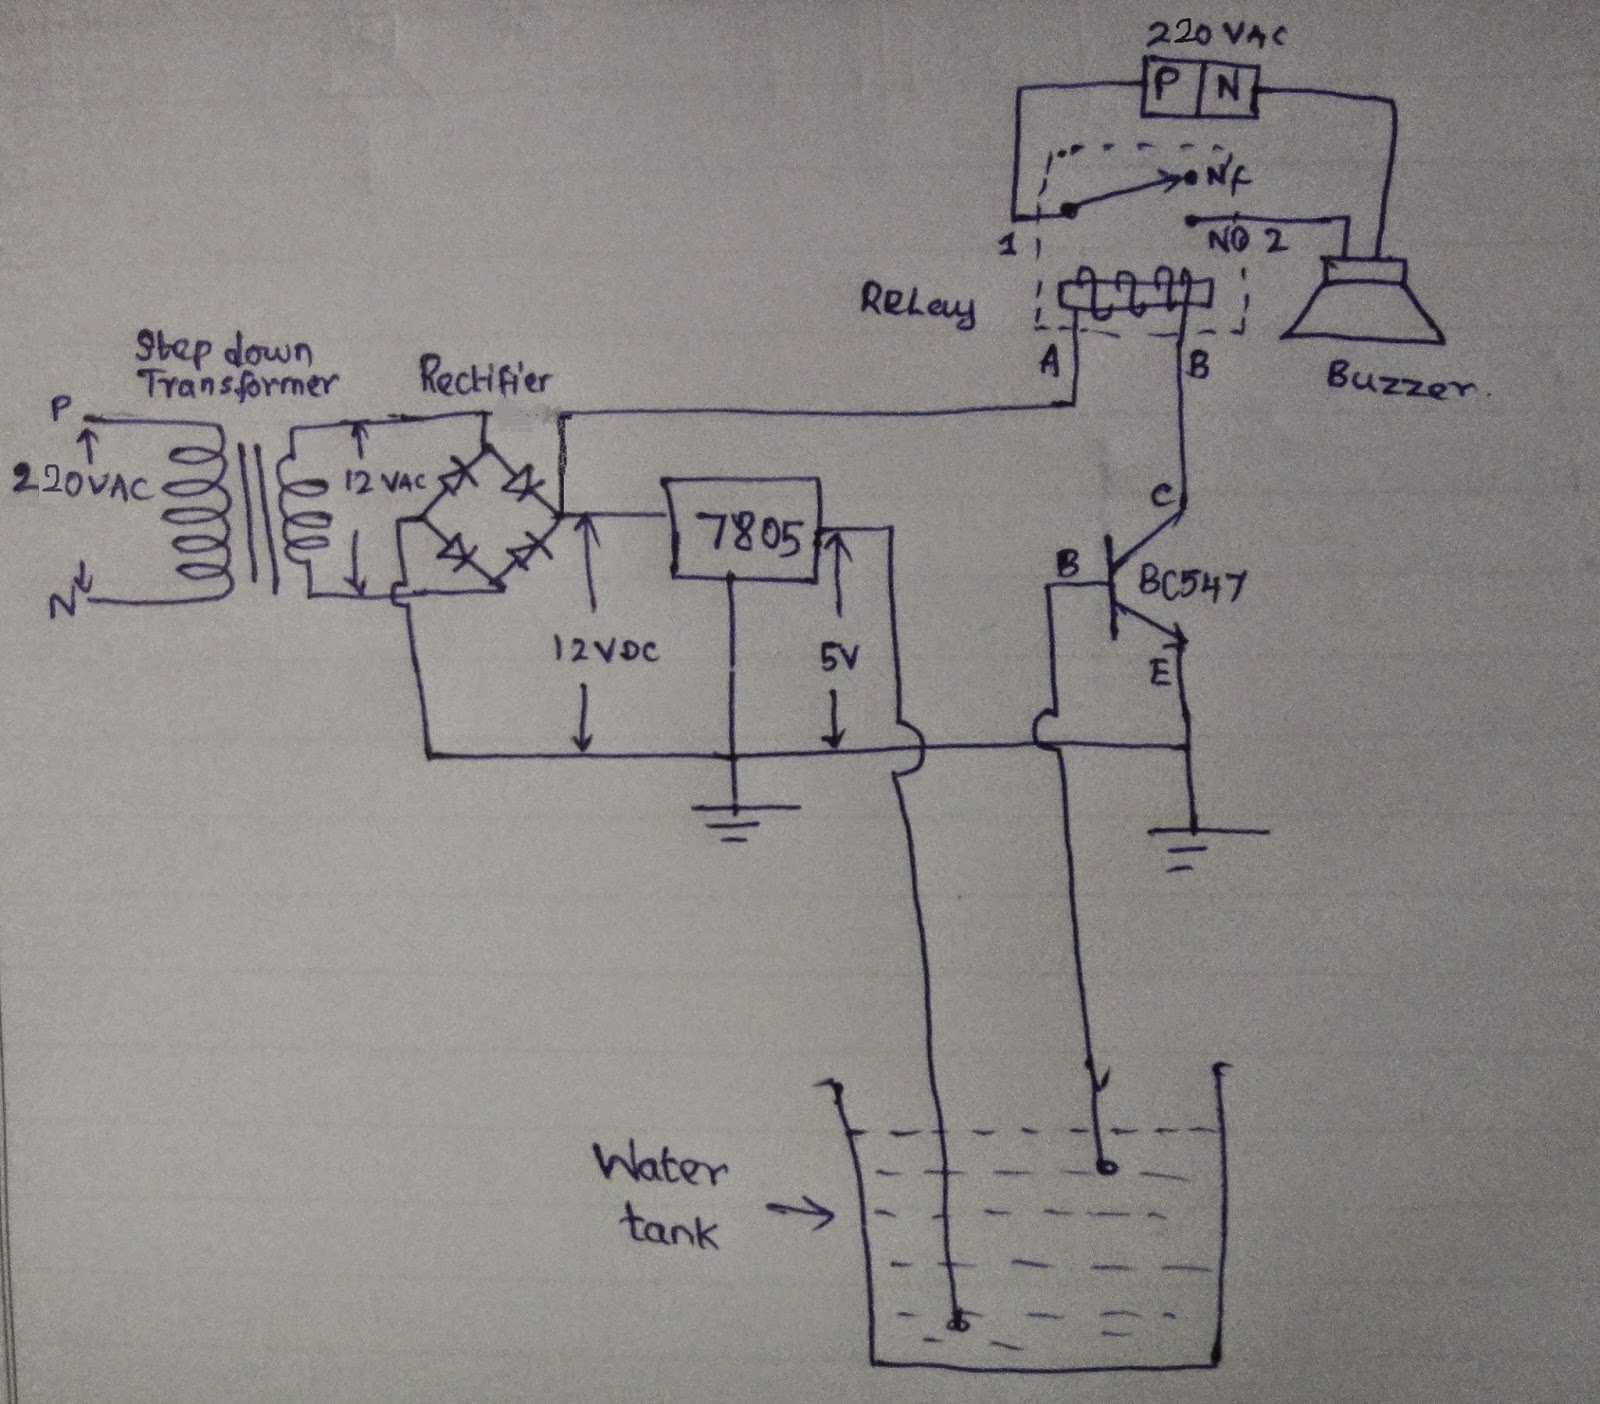 Simpler Electronics 2014 Relay Circuit Using Bc547 And The Above After Soldering Work Looks Like